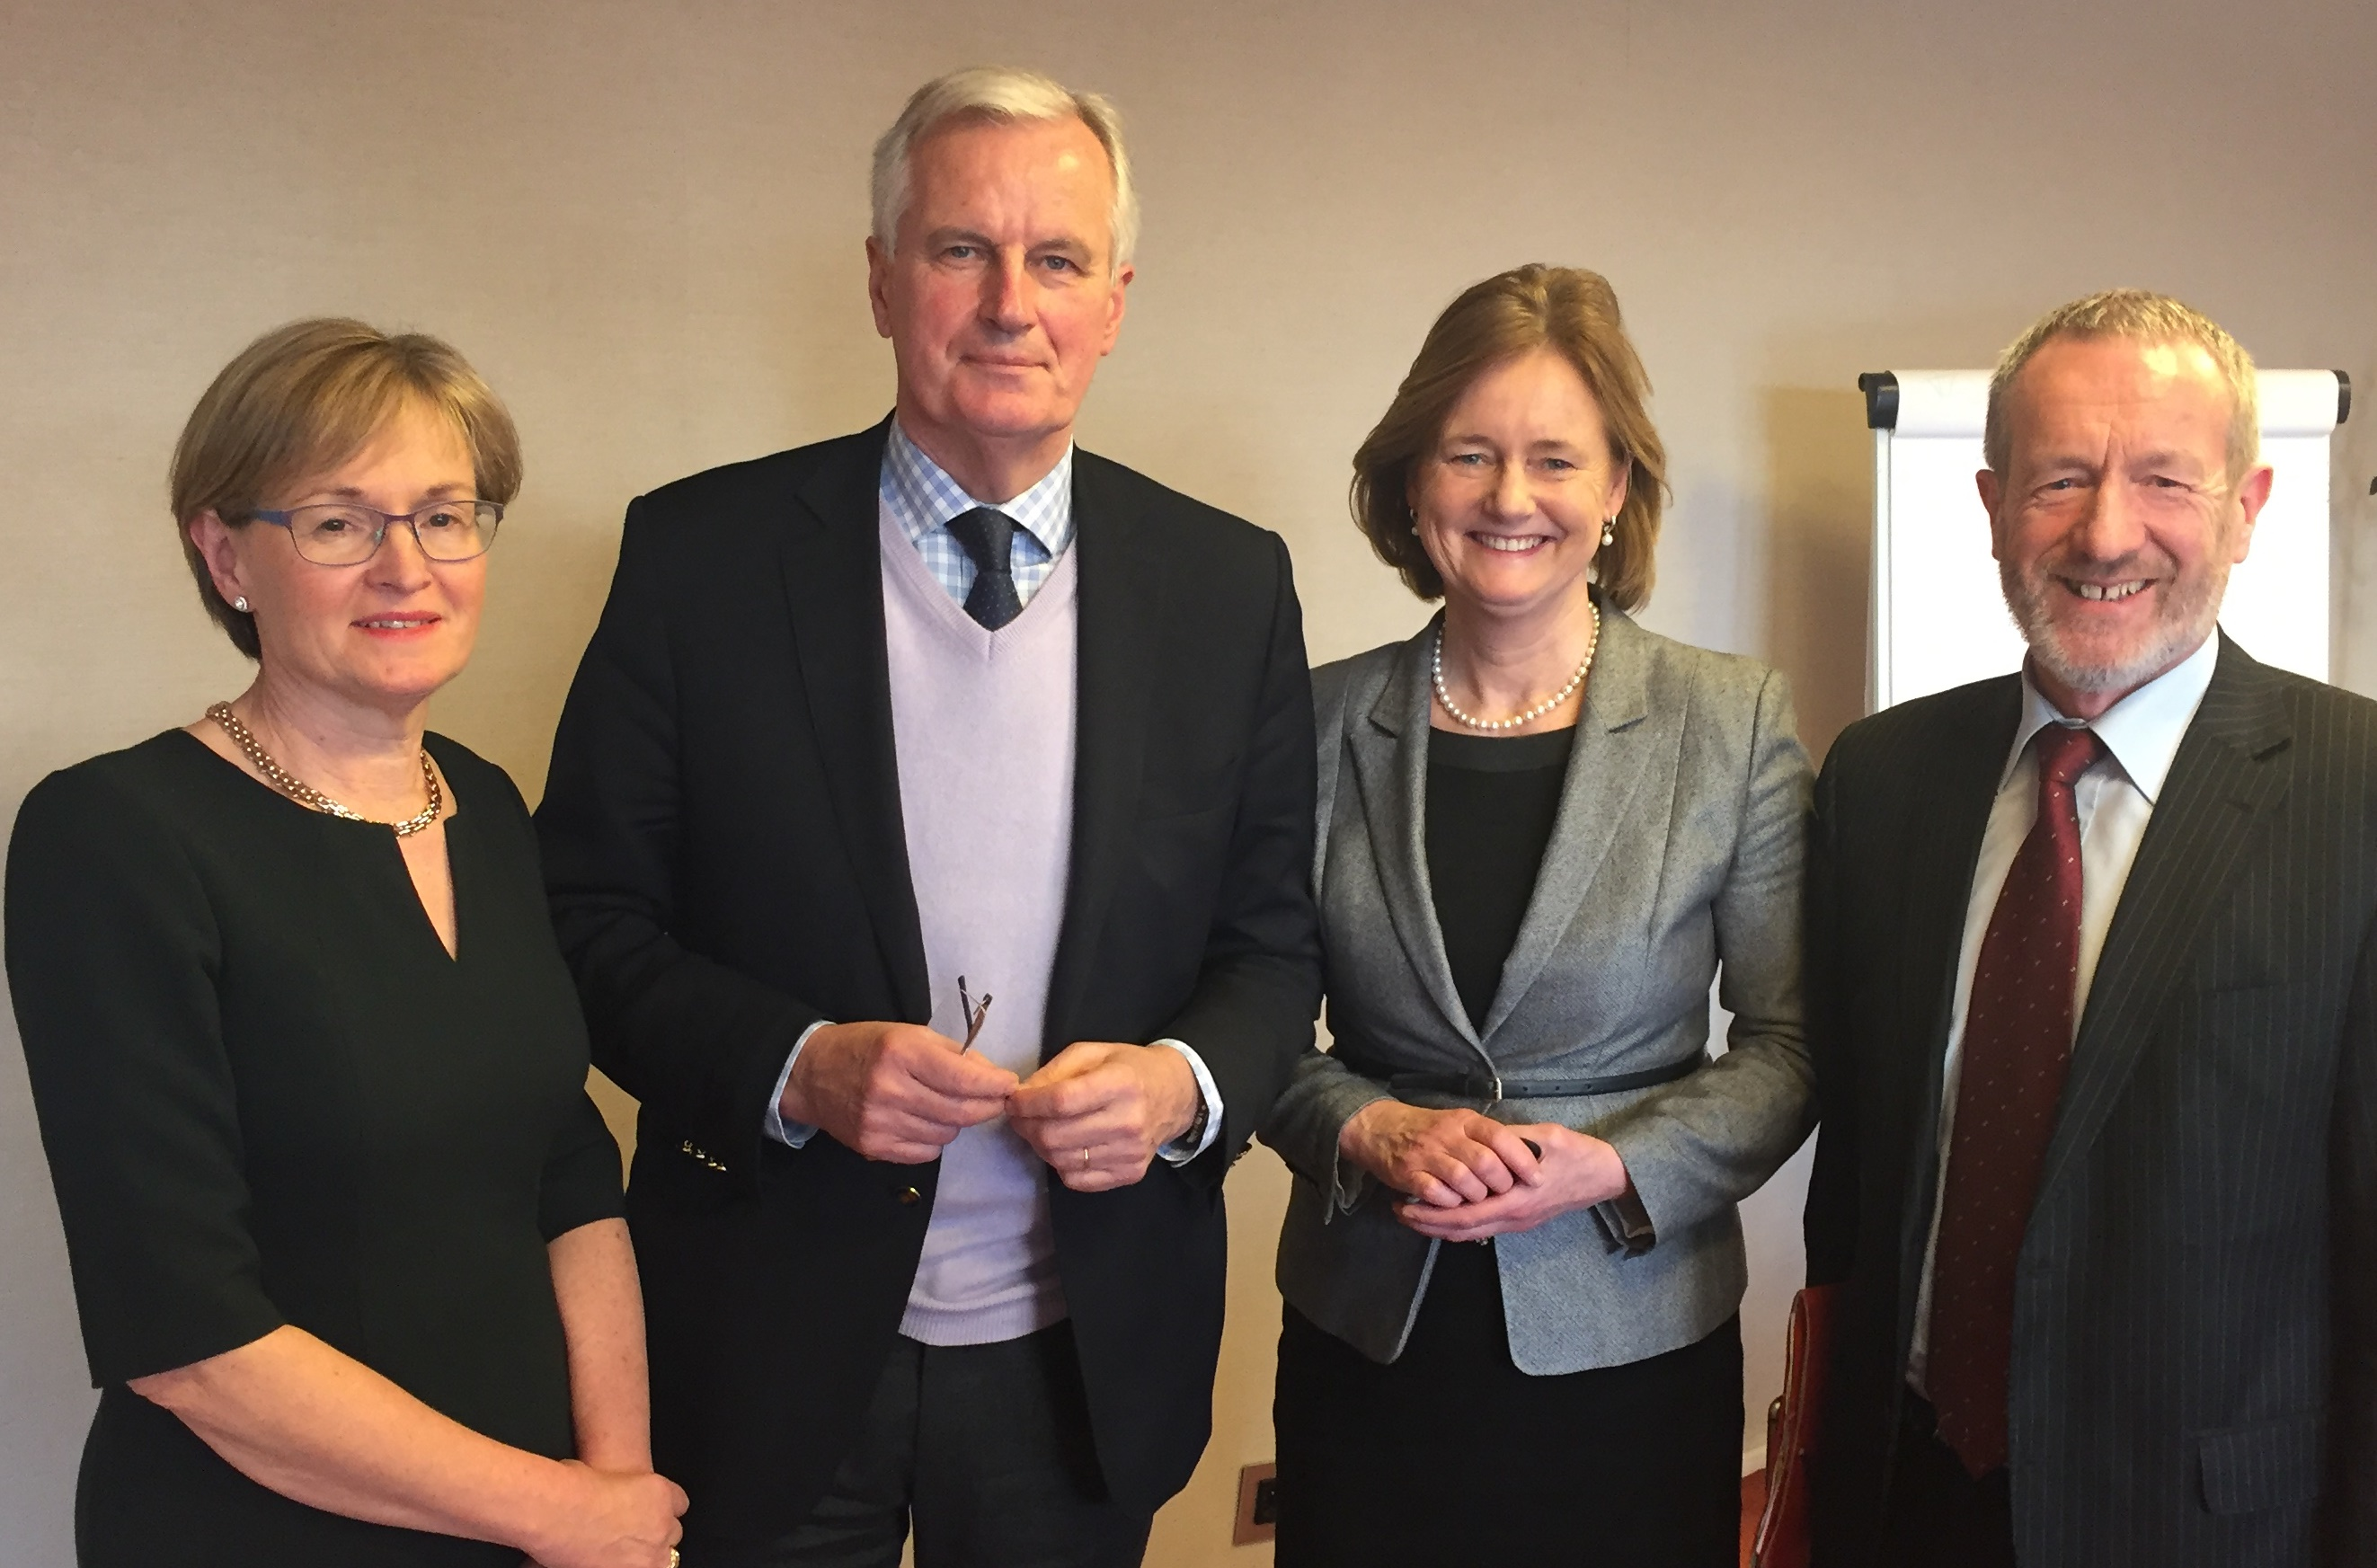 With Michel Barnier and Mairead McGuinness MEP